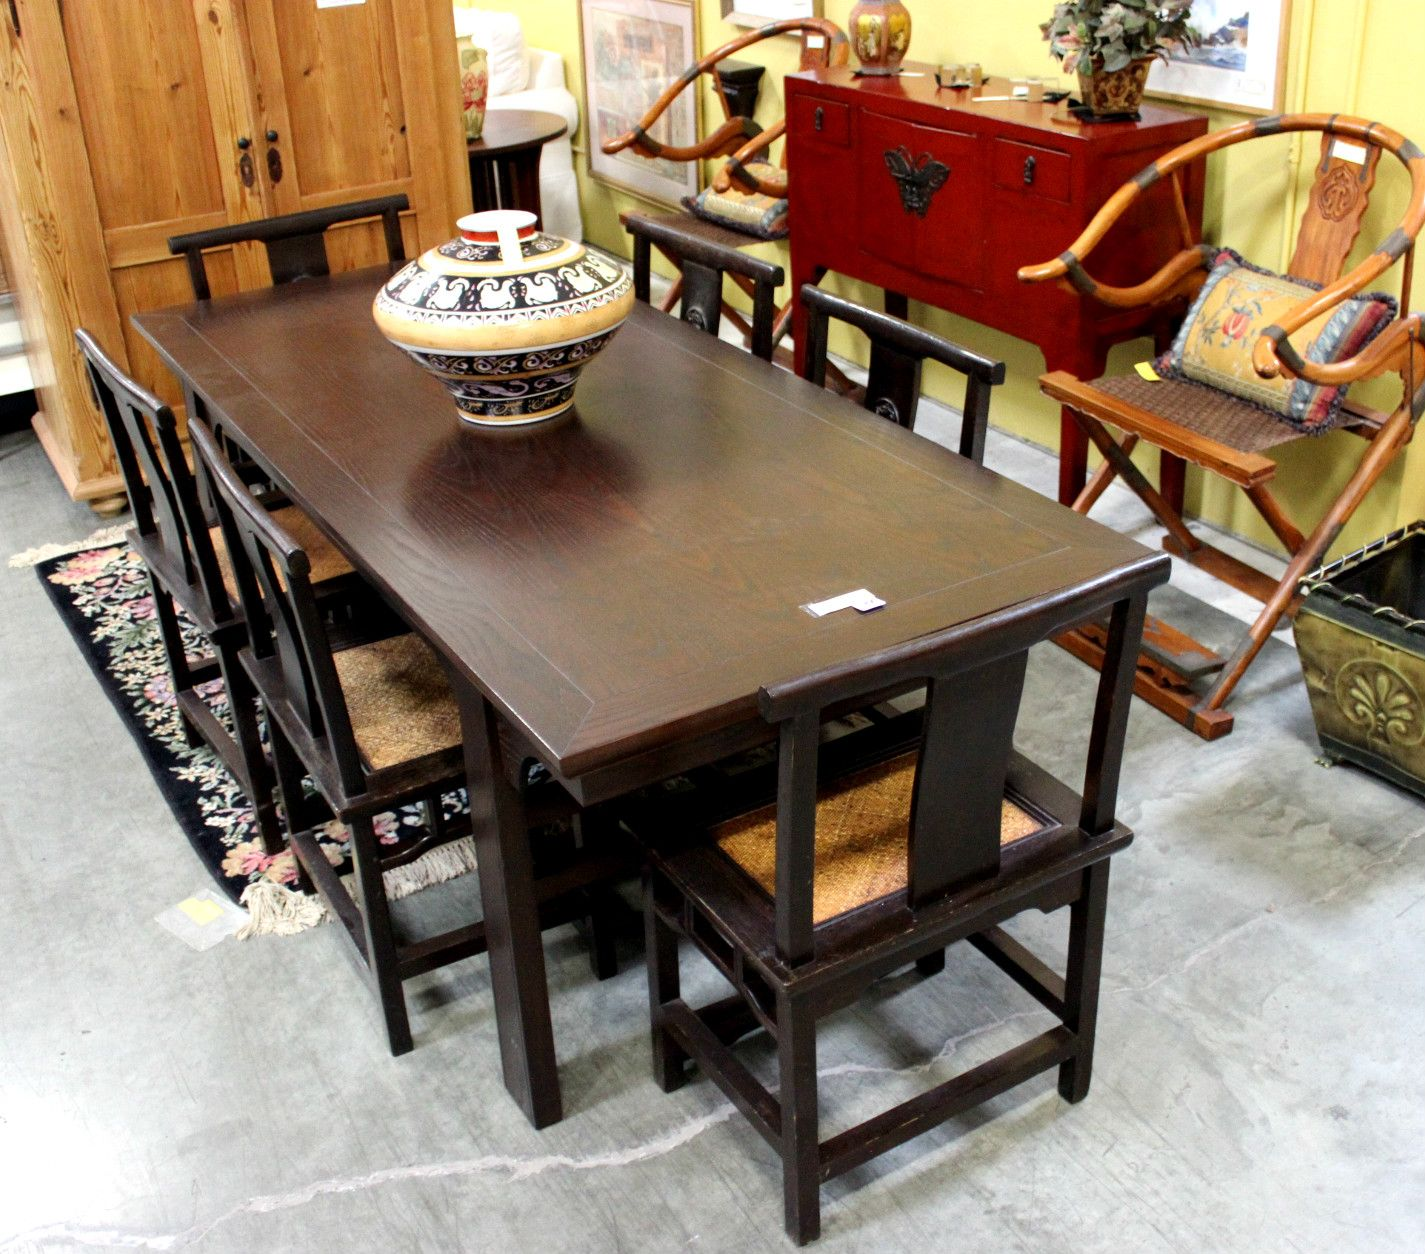 4480 New 36 X 86 Dark Finish Zen Dining Table From Eastwest Fusion In Portland Chairs